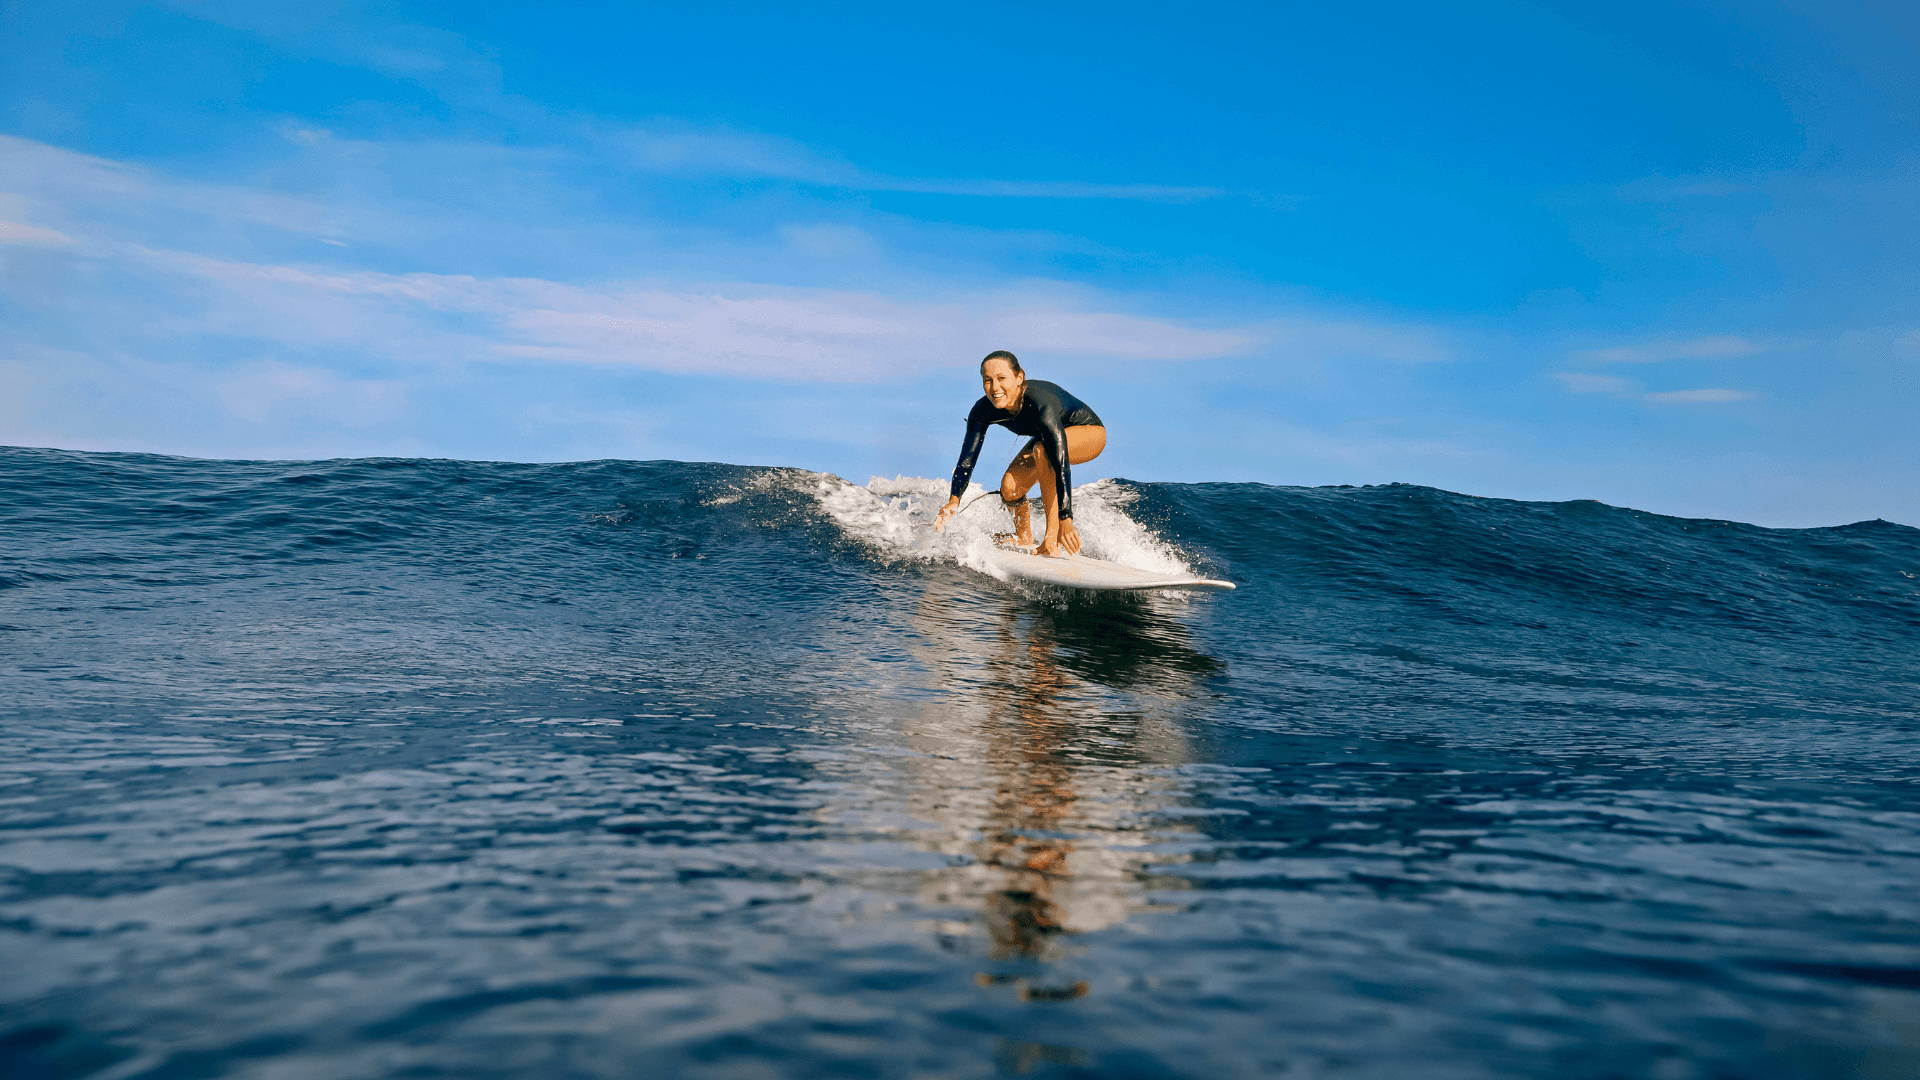 Best Locations for the Solo Female Surfer